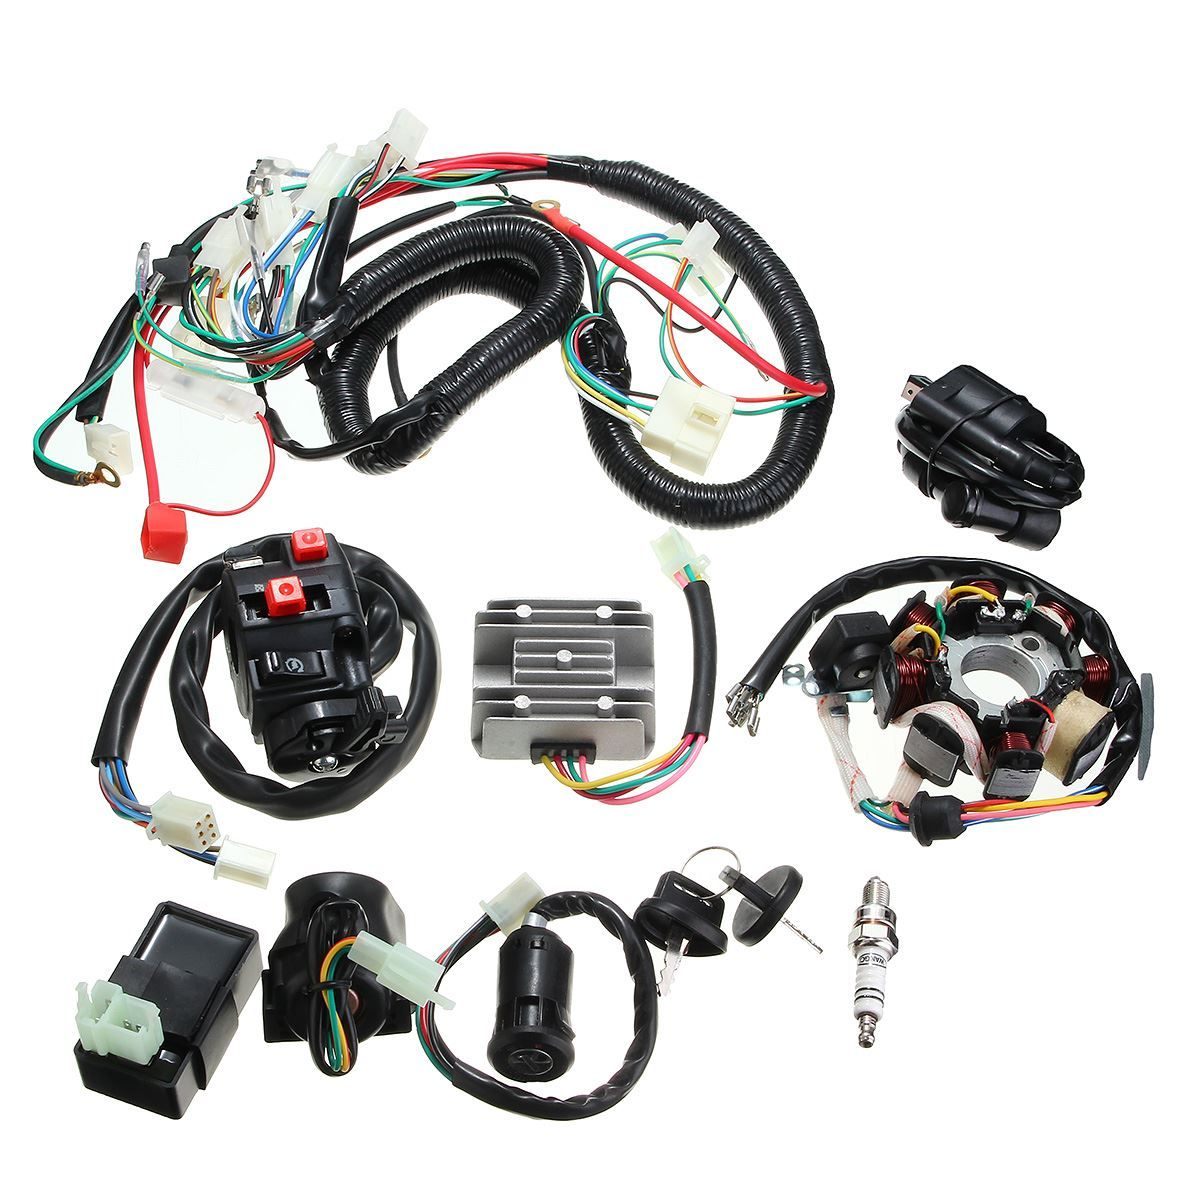 small resolution of 1 set quad electric cdi coil wire harness stator assembly wiring set for 125 150 200 250cc push rod engine affiliate